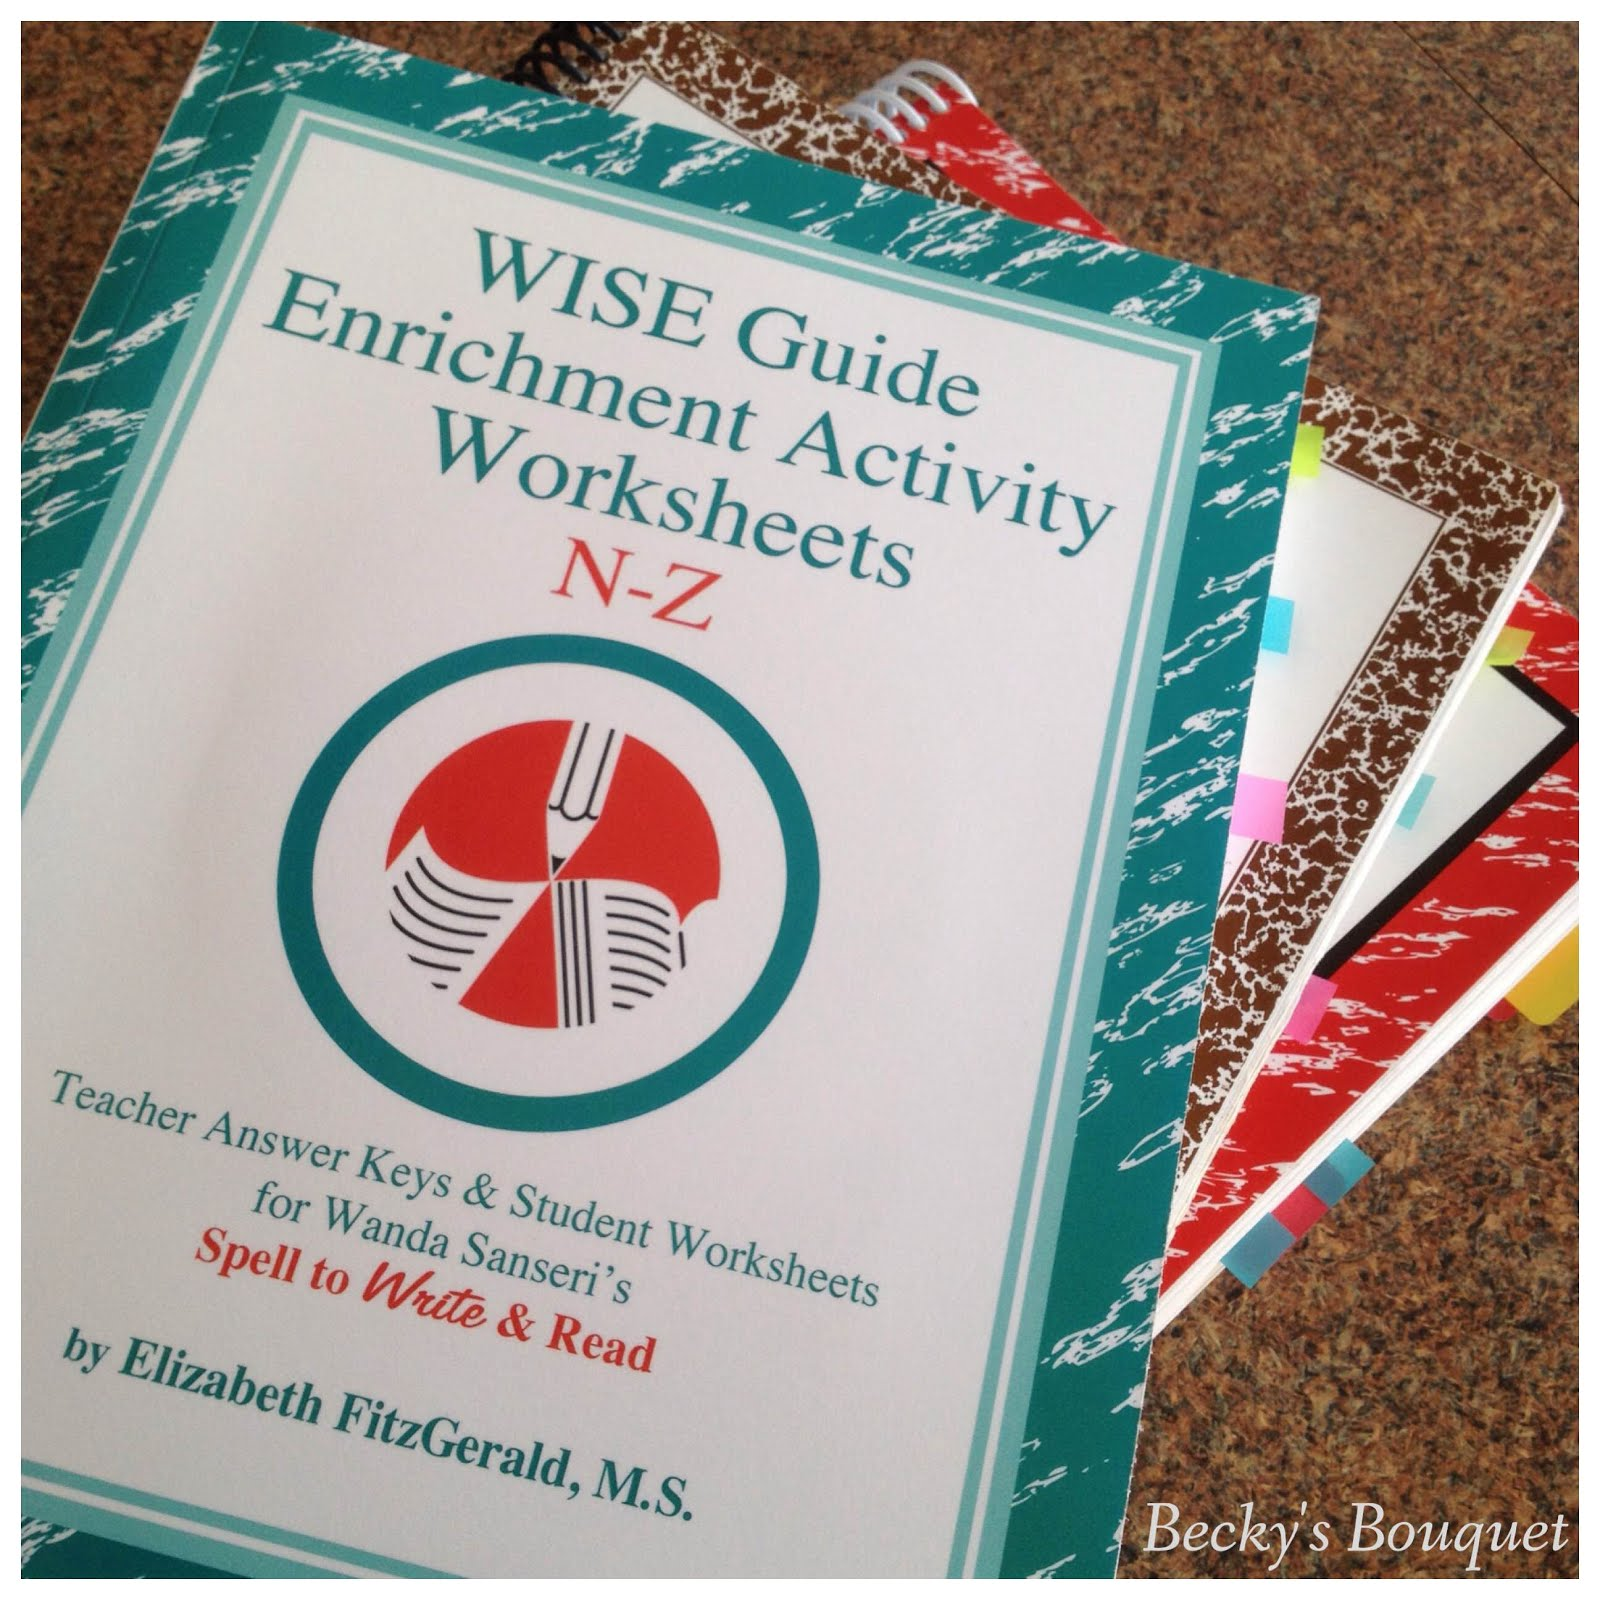 Review Wise Guide Enrichment Activity Worksheets N Z By